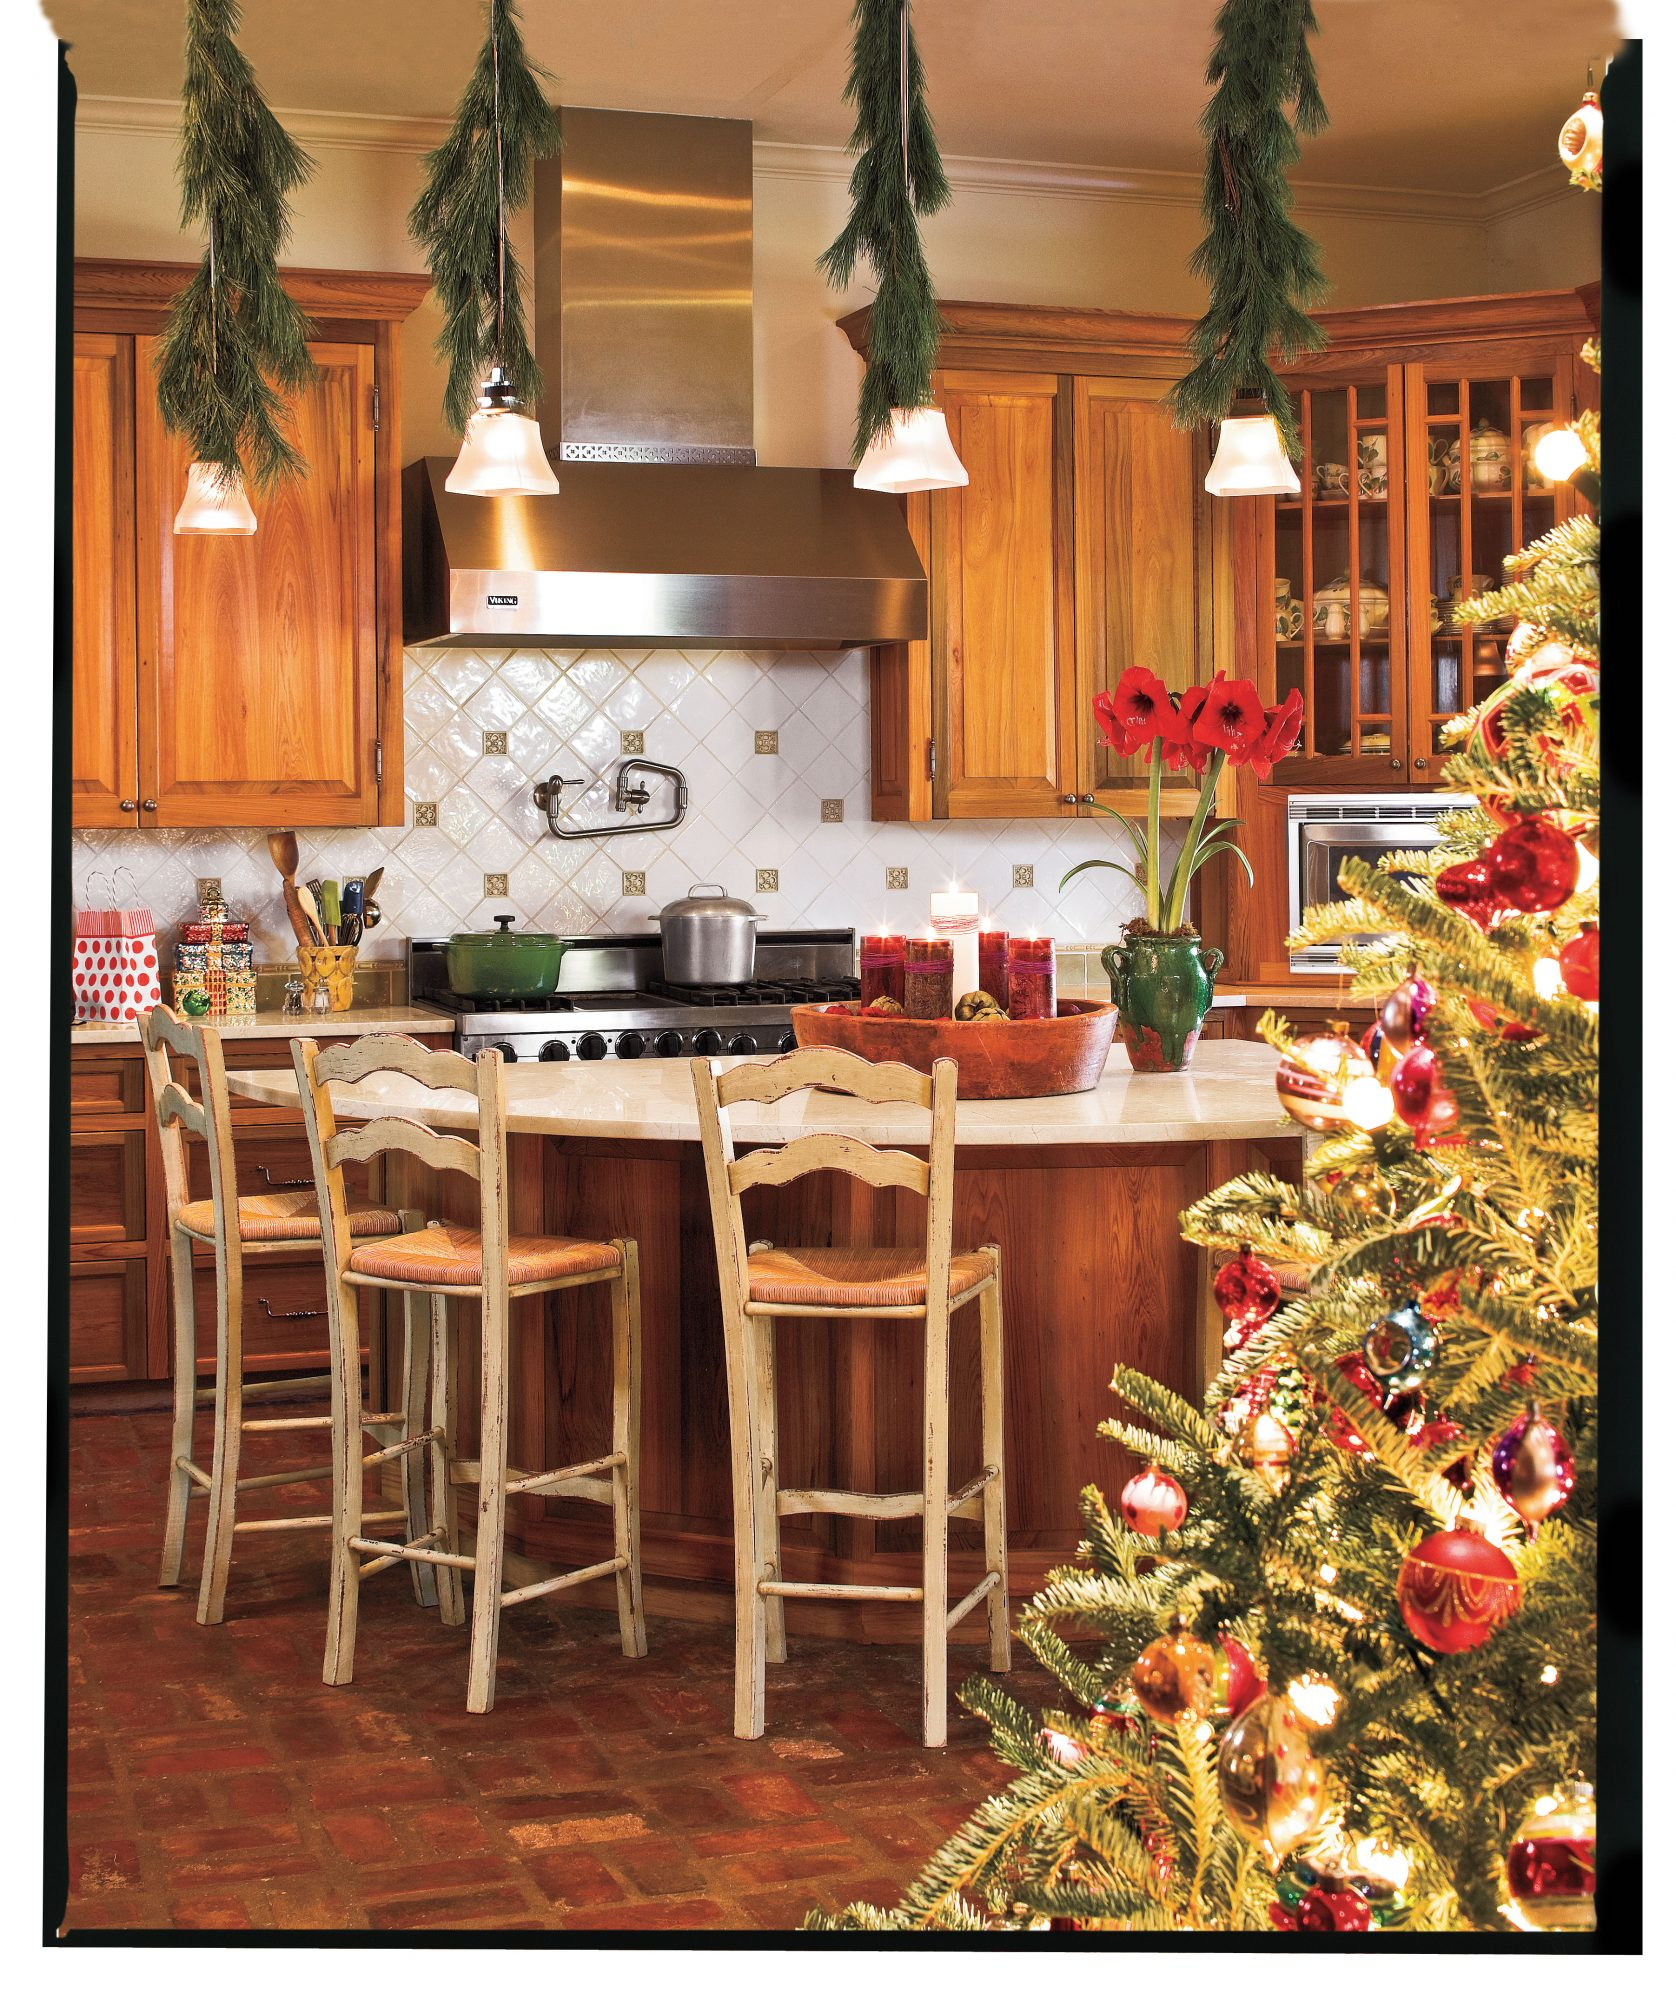 100+ Best-Ever Christmas Decorating Ideas for 2019 ... on christmas plans, train plans, halloween plans, temple plans, sheep plans, outdoor wooden manger plans, birth plans, church plans, life plans, marriage plans, sleigh plans,